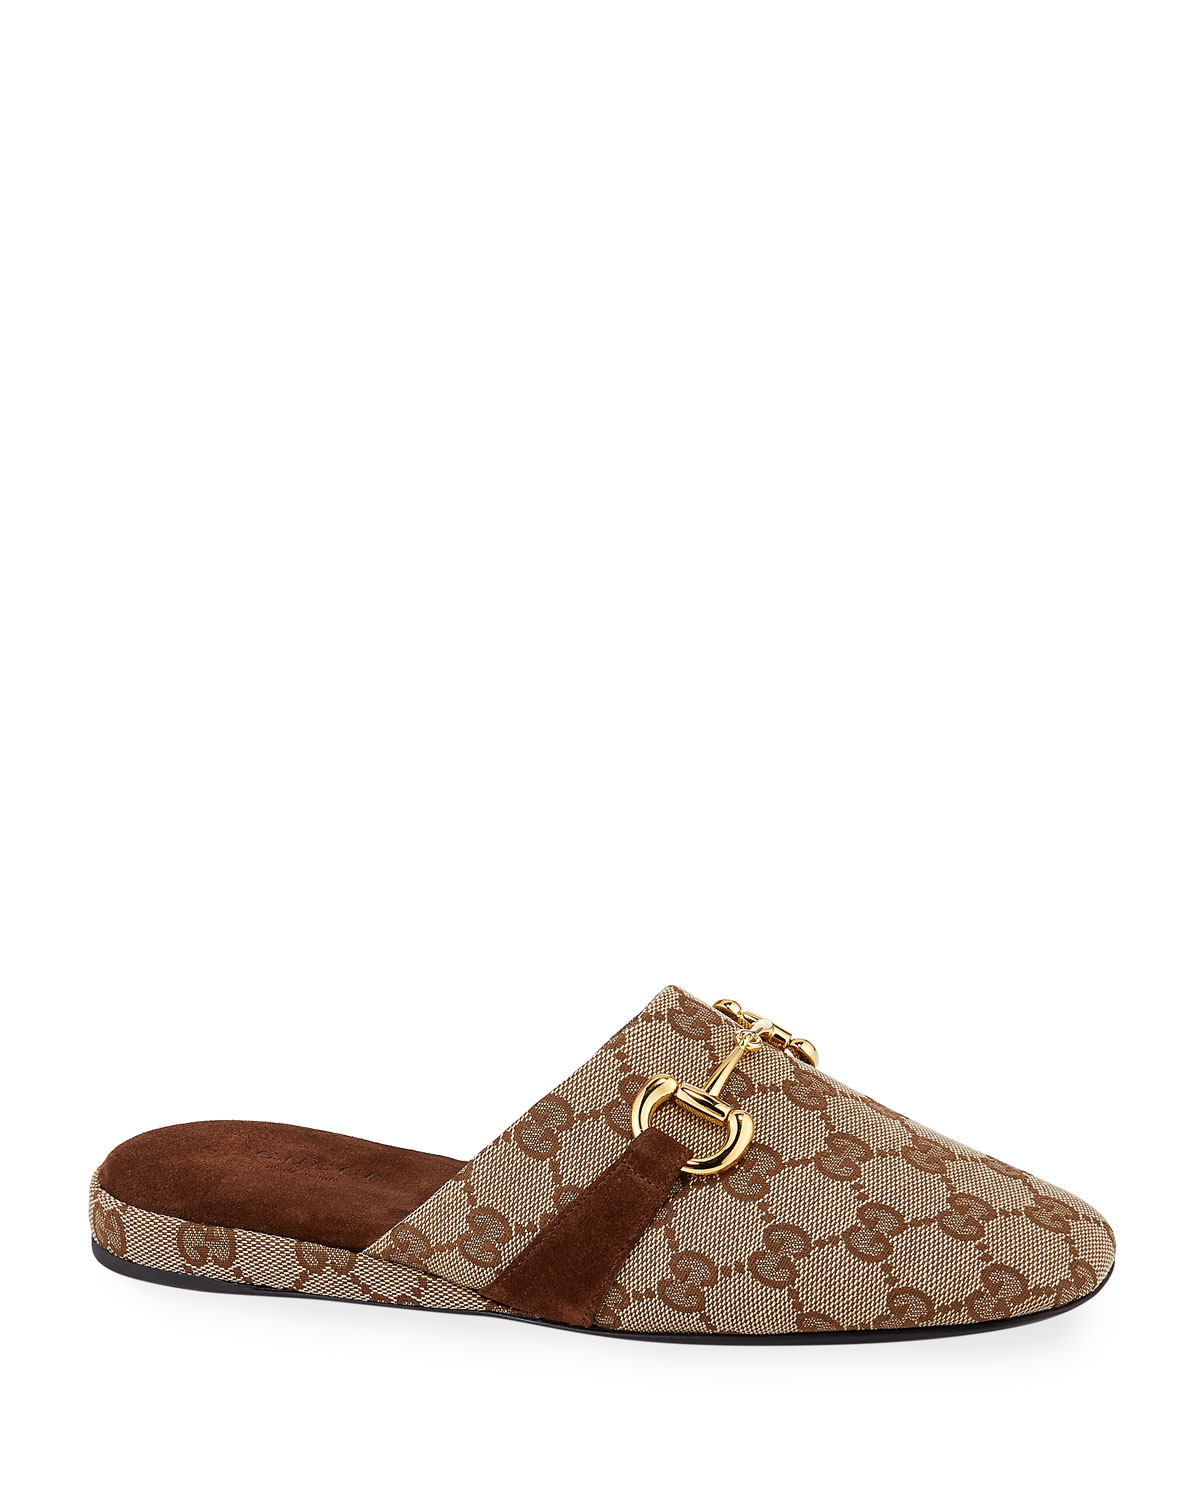 Gucci Slippers PERICLE GG CANVAS HORSEBIT MULES